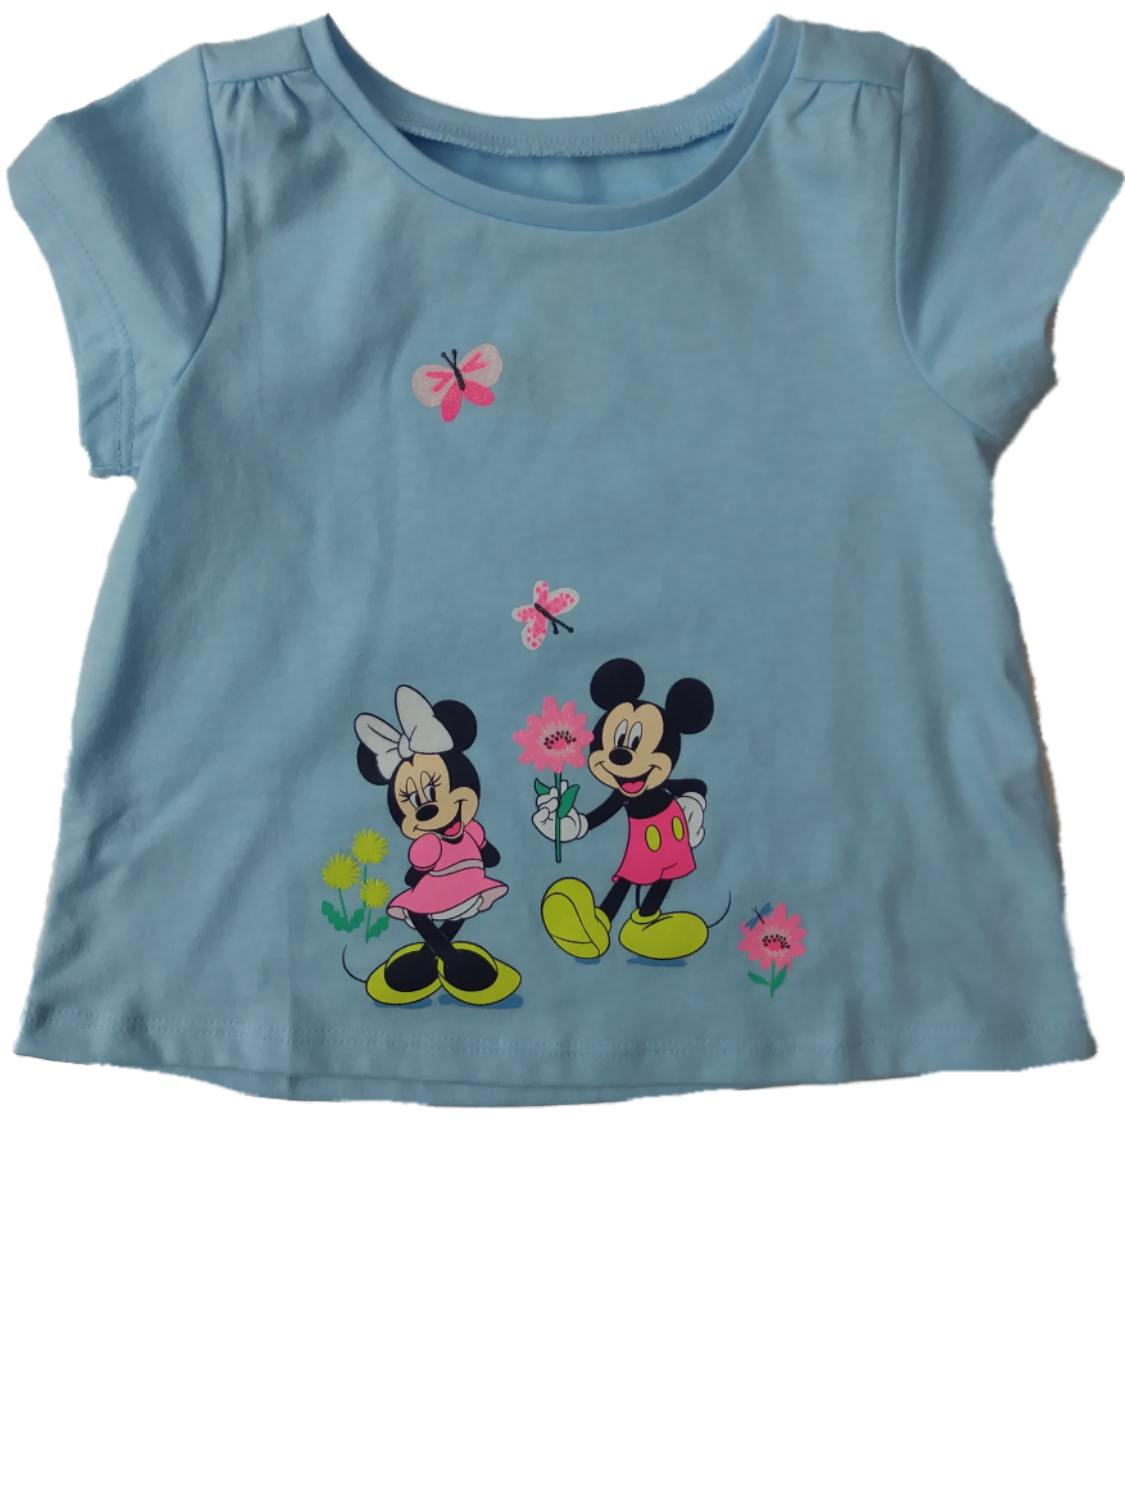 Mickey Mouse Disney All Characters Kids Boys Girls Birthday Top Gift T shirt 777